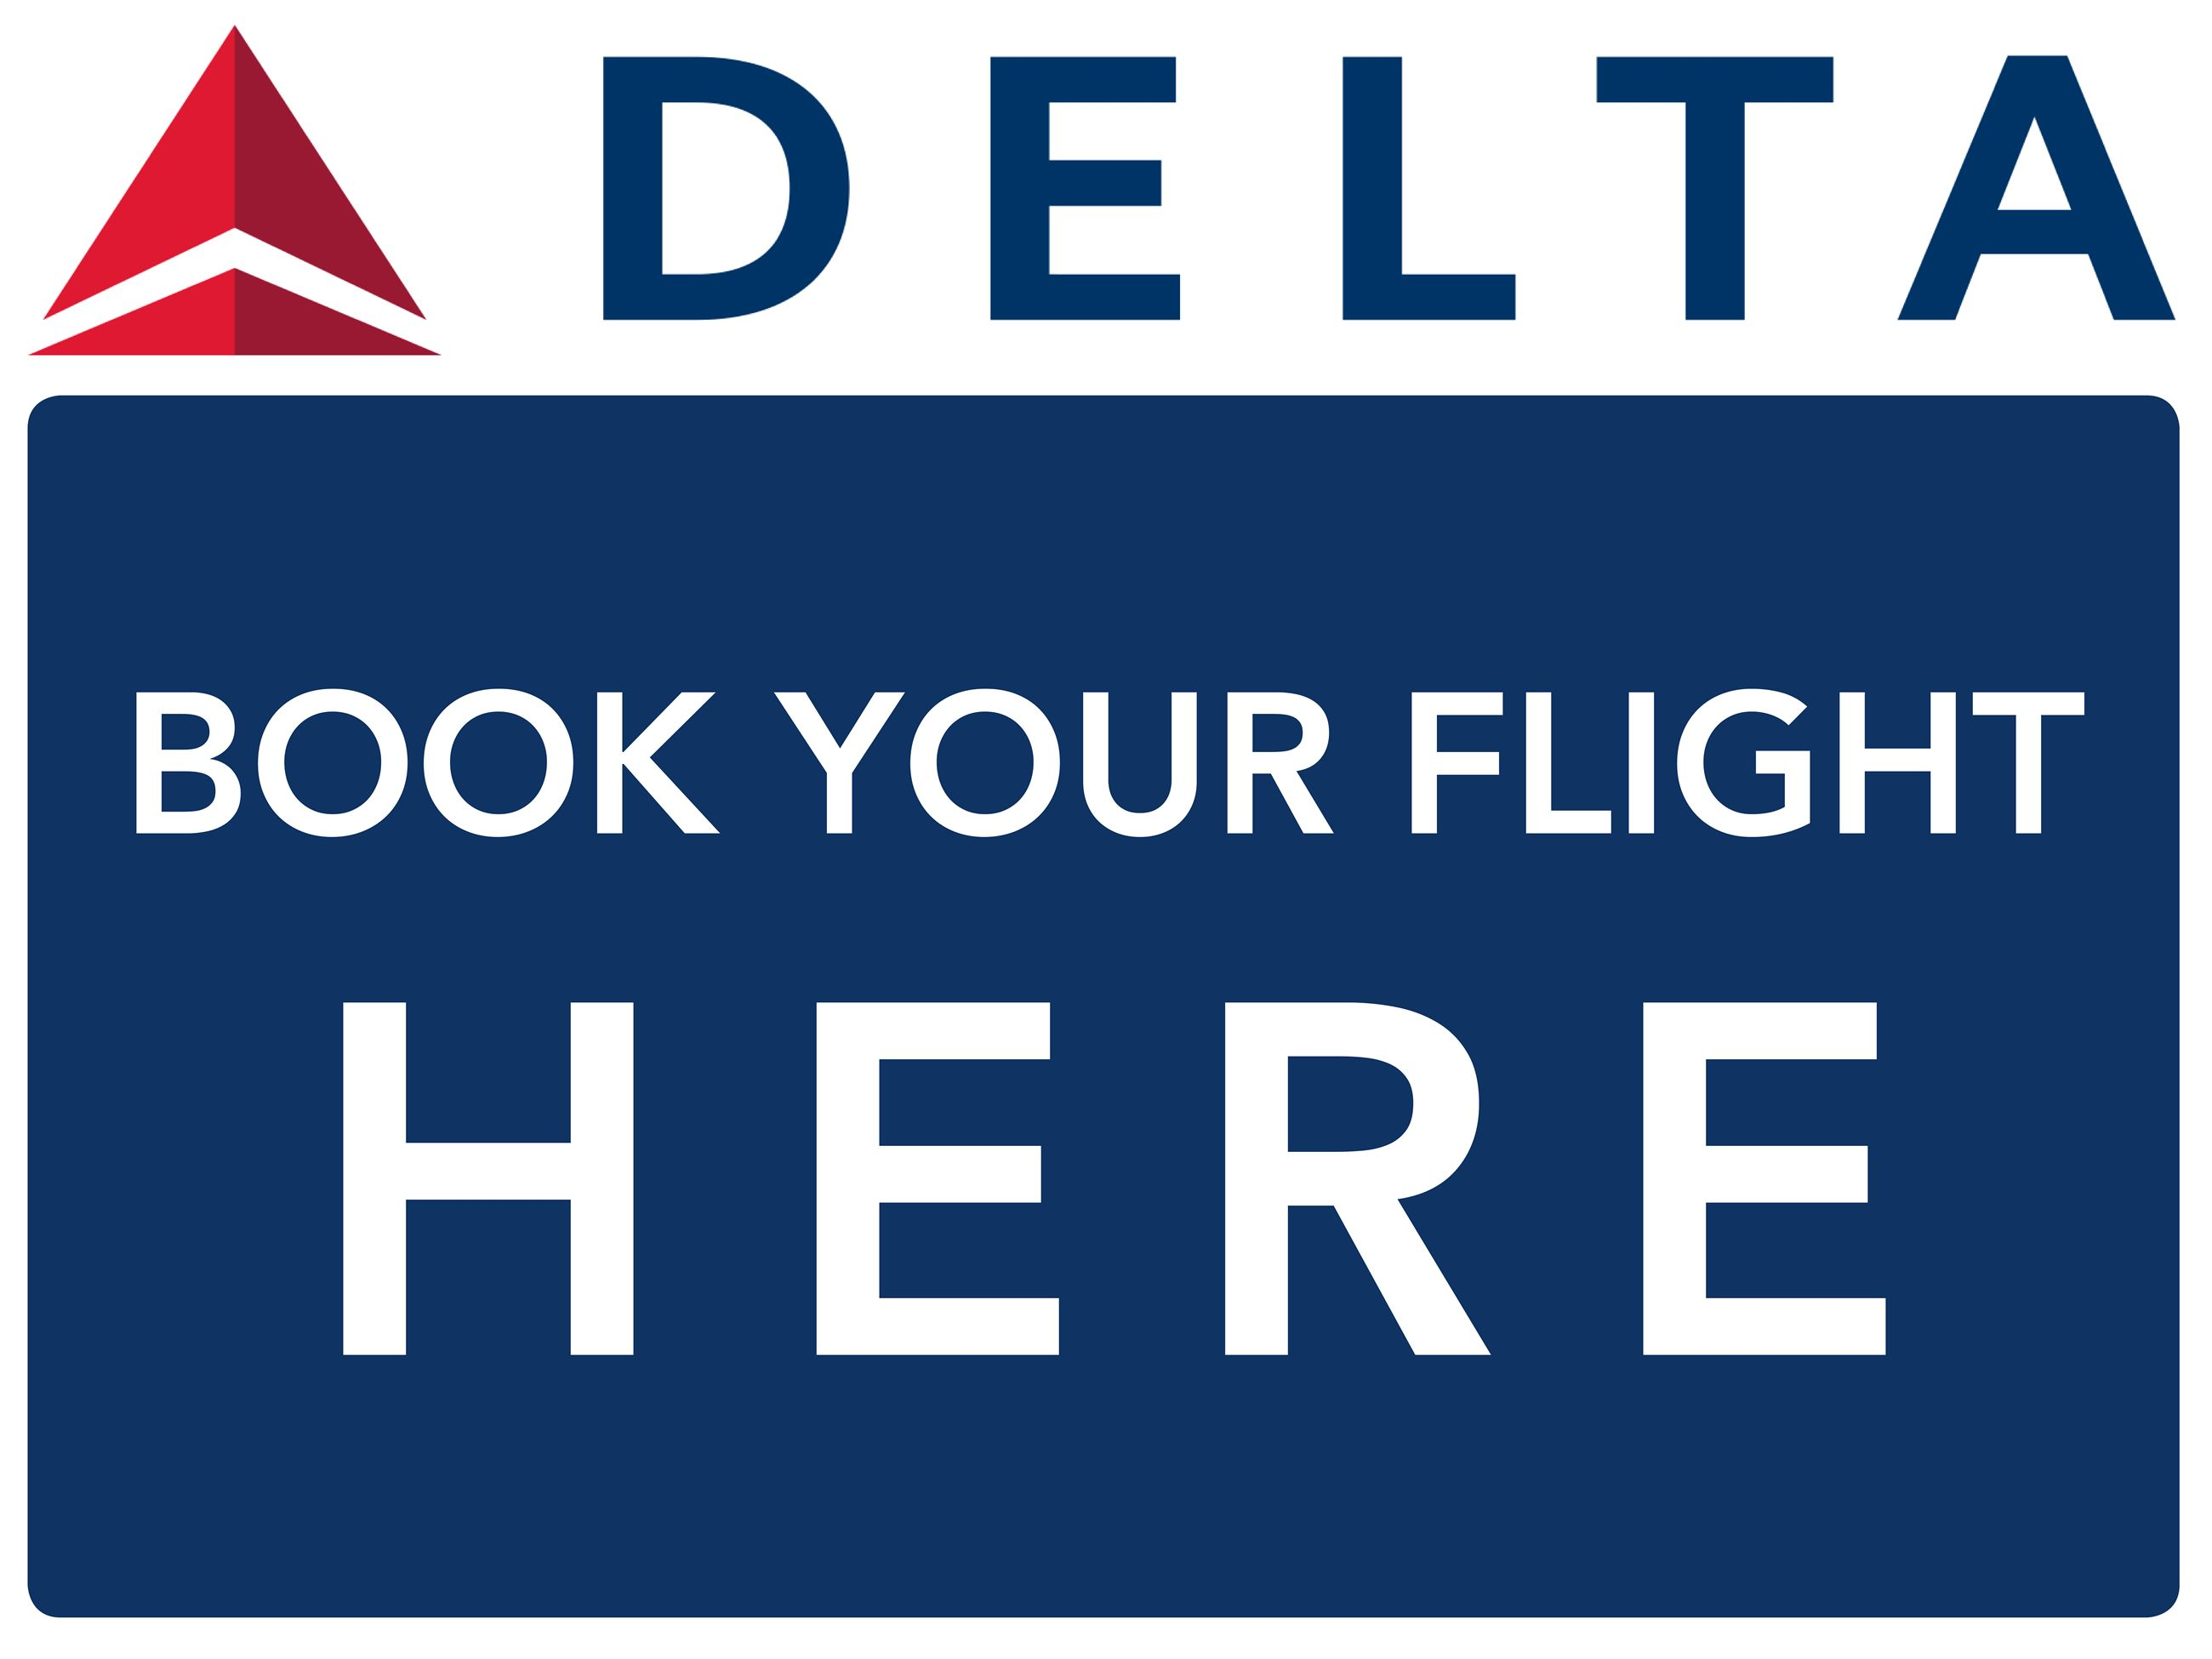 DELTA Booking Opens in new window